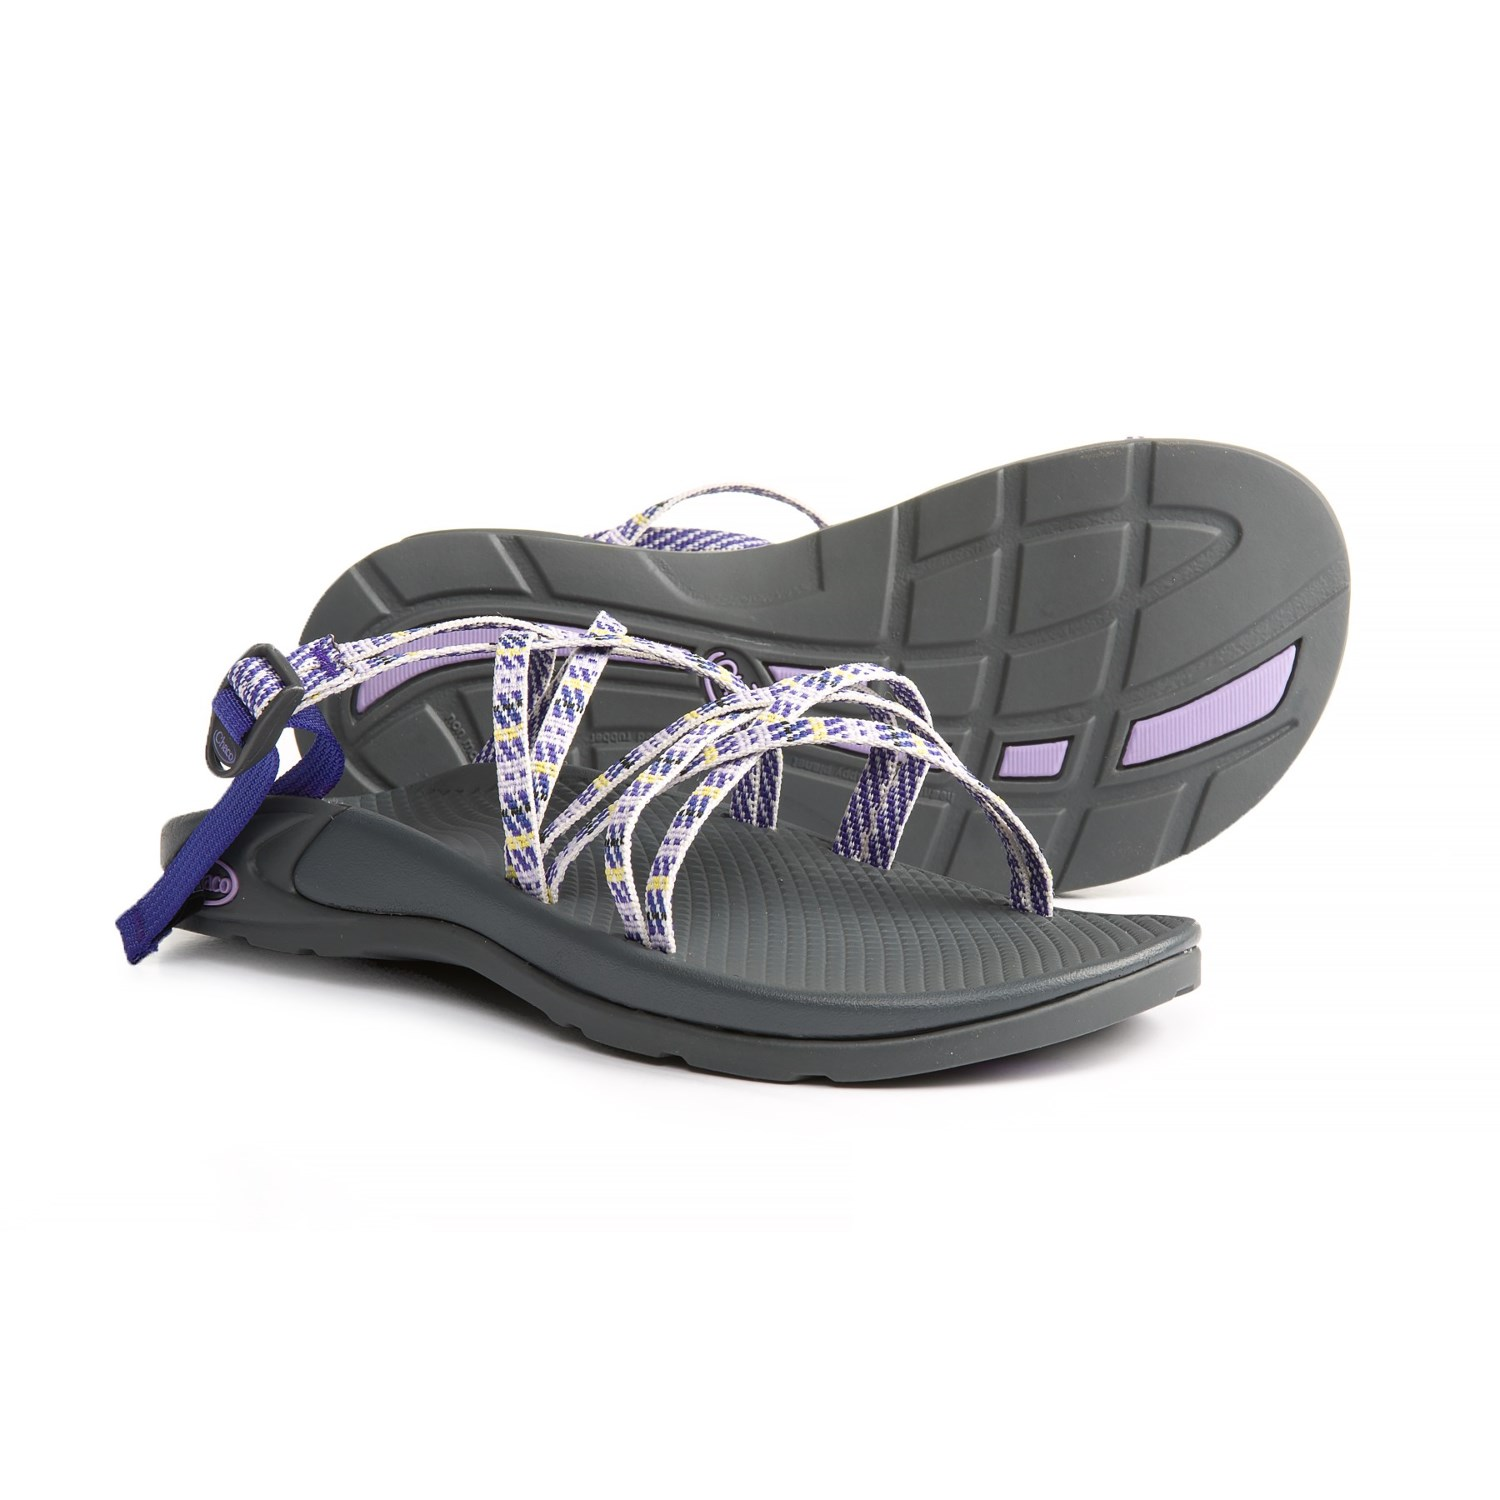 5ec199415821 Chaco Wrapsody X Sport Sandals - Slip-Ons (For Women)  6XuXh1504592 ...